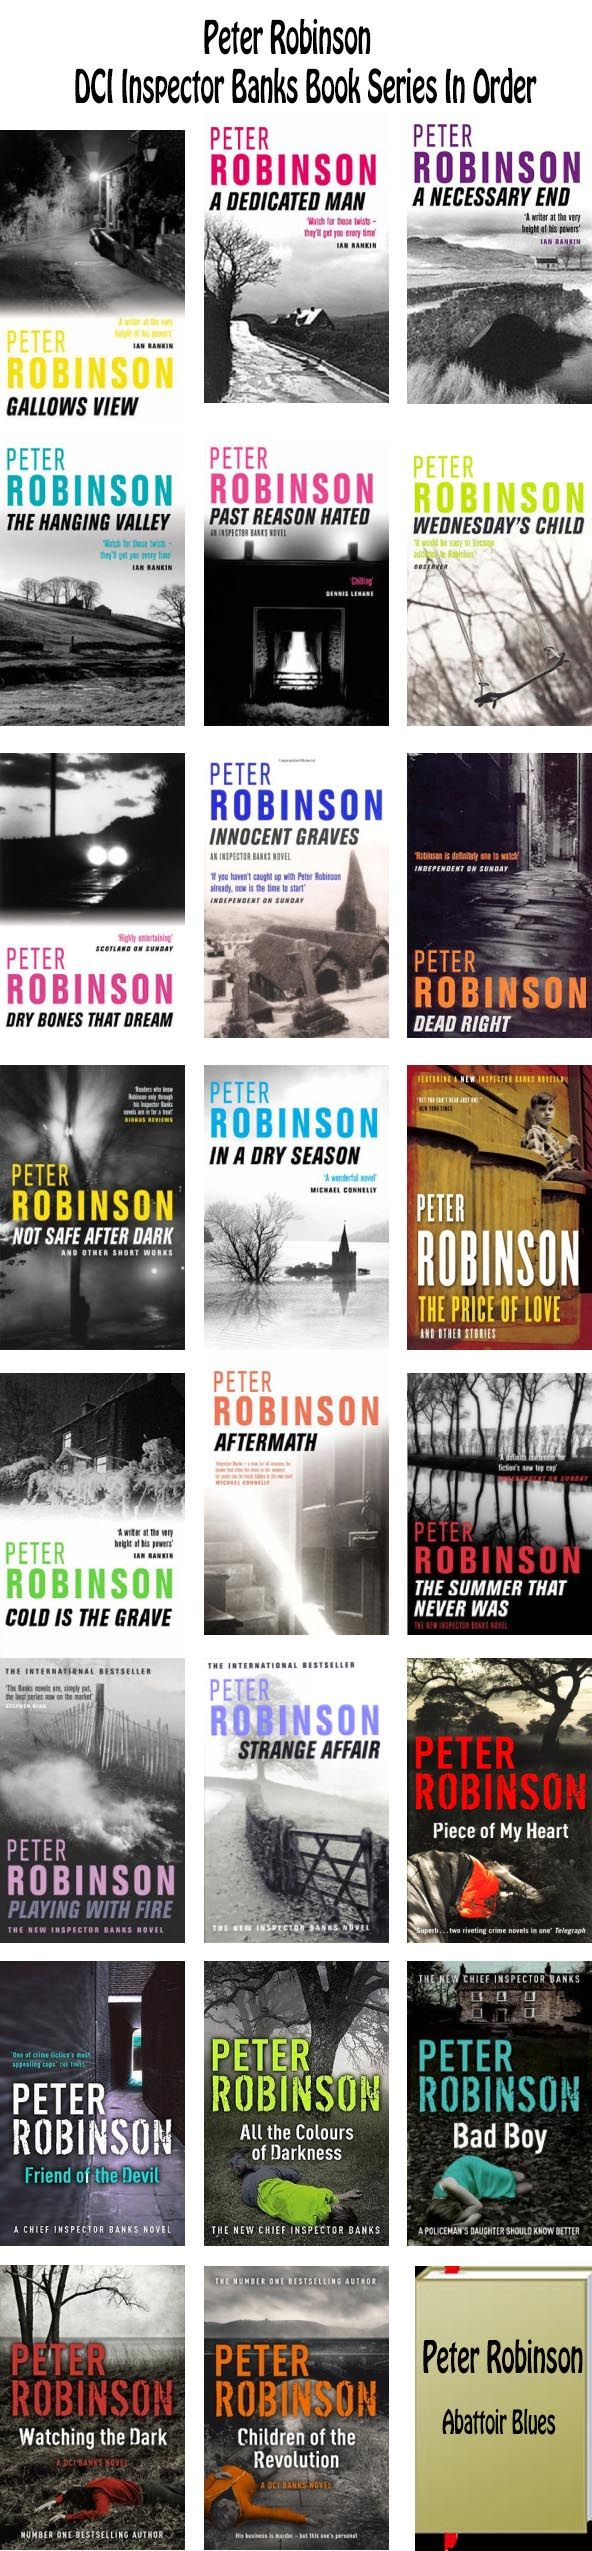 Peter Robinson DCI Inspector Alan Banks books in chronological order British mystery series #novels